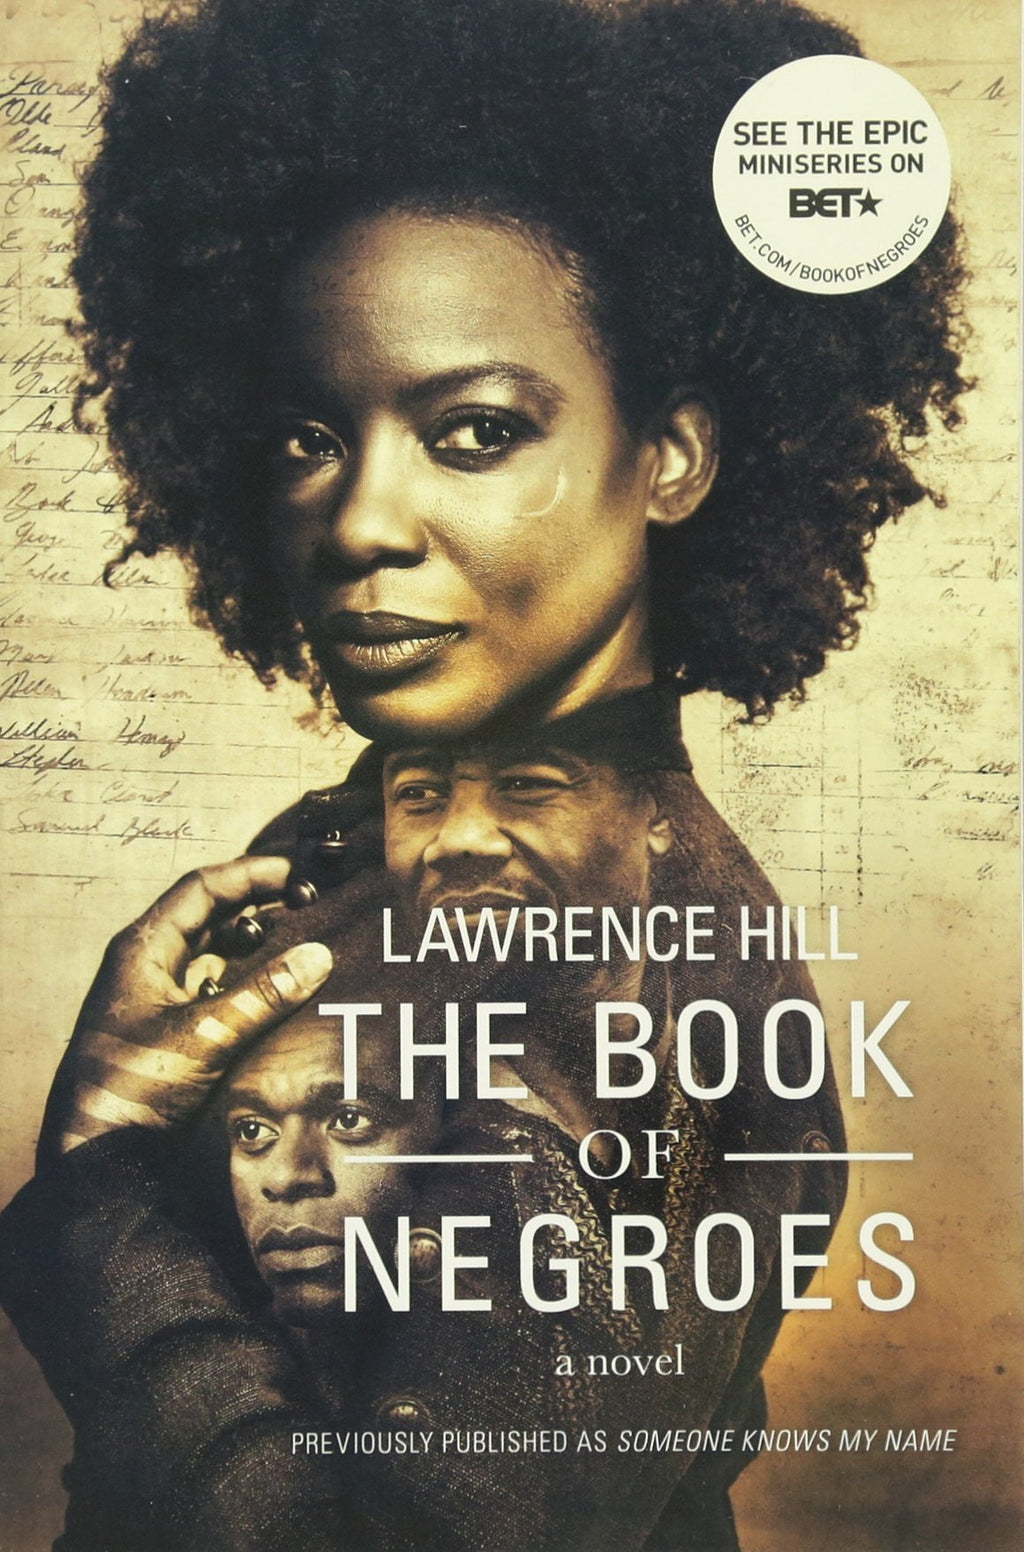 The Book of Negroes: A Novel (Movie Tie-in Edition) by Lawrence Hill, Paperback - MGworld